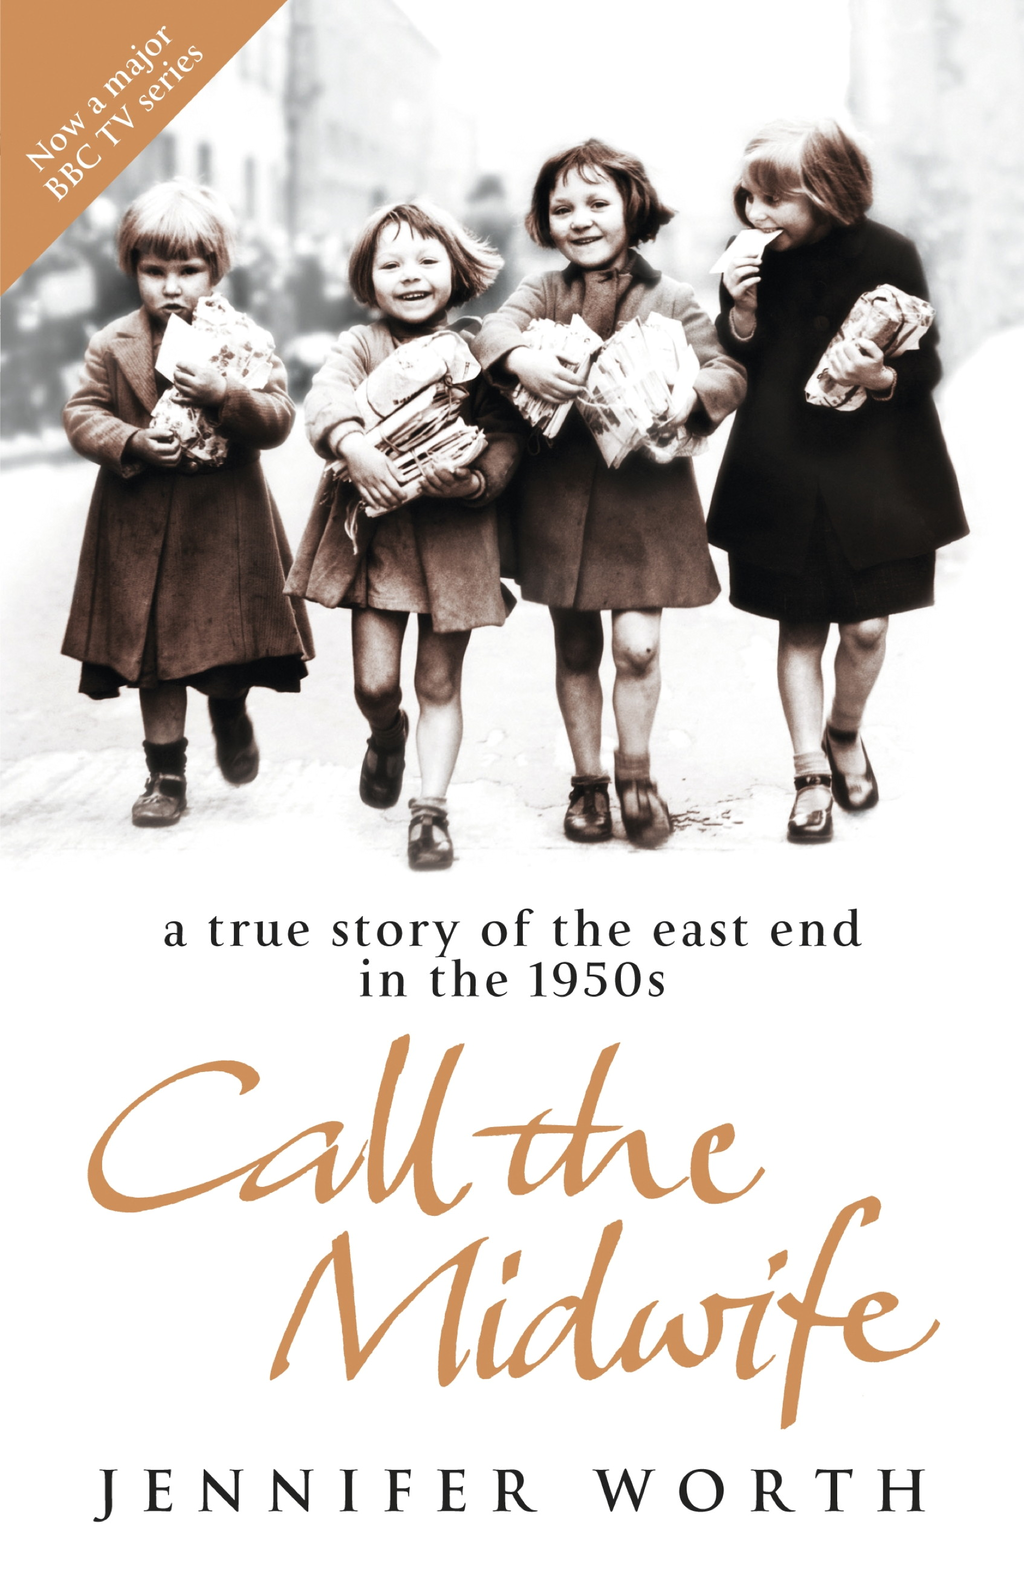 Call The Midwife A True Story Of The East End In The 1950s